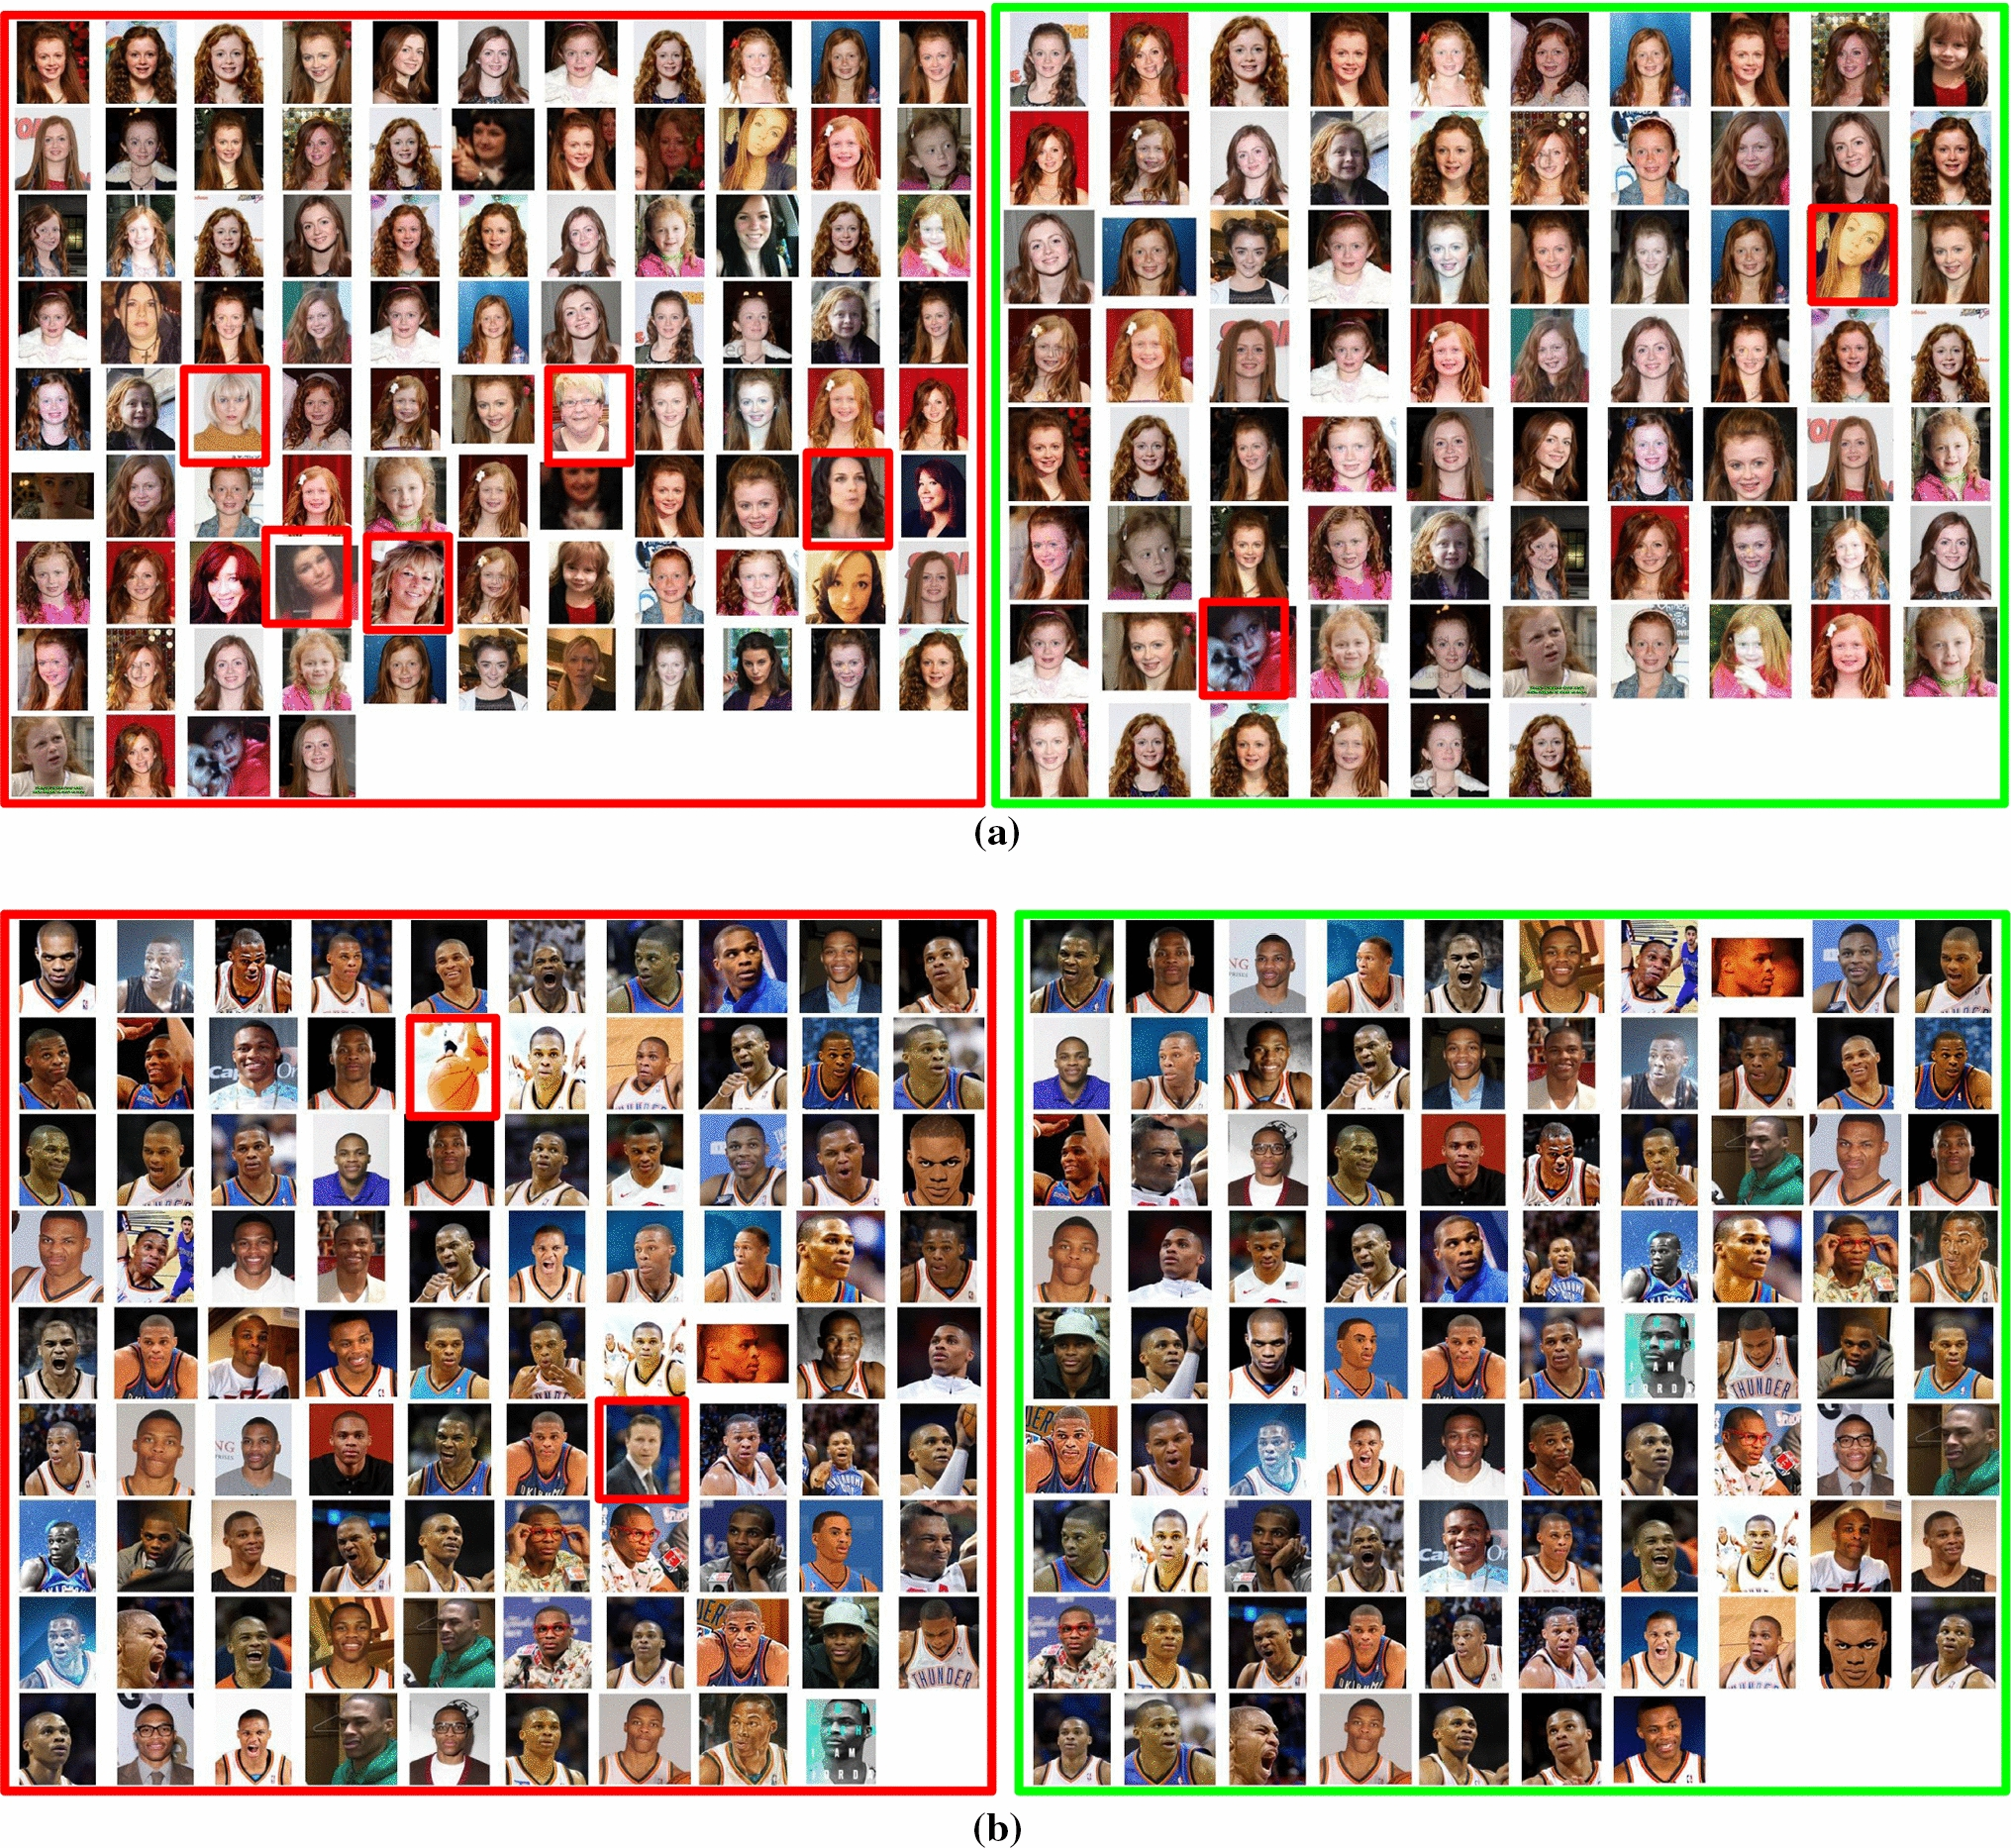 Face-Specific Data Augmentation for Unconstrained Face